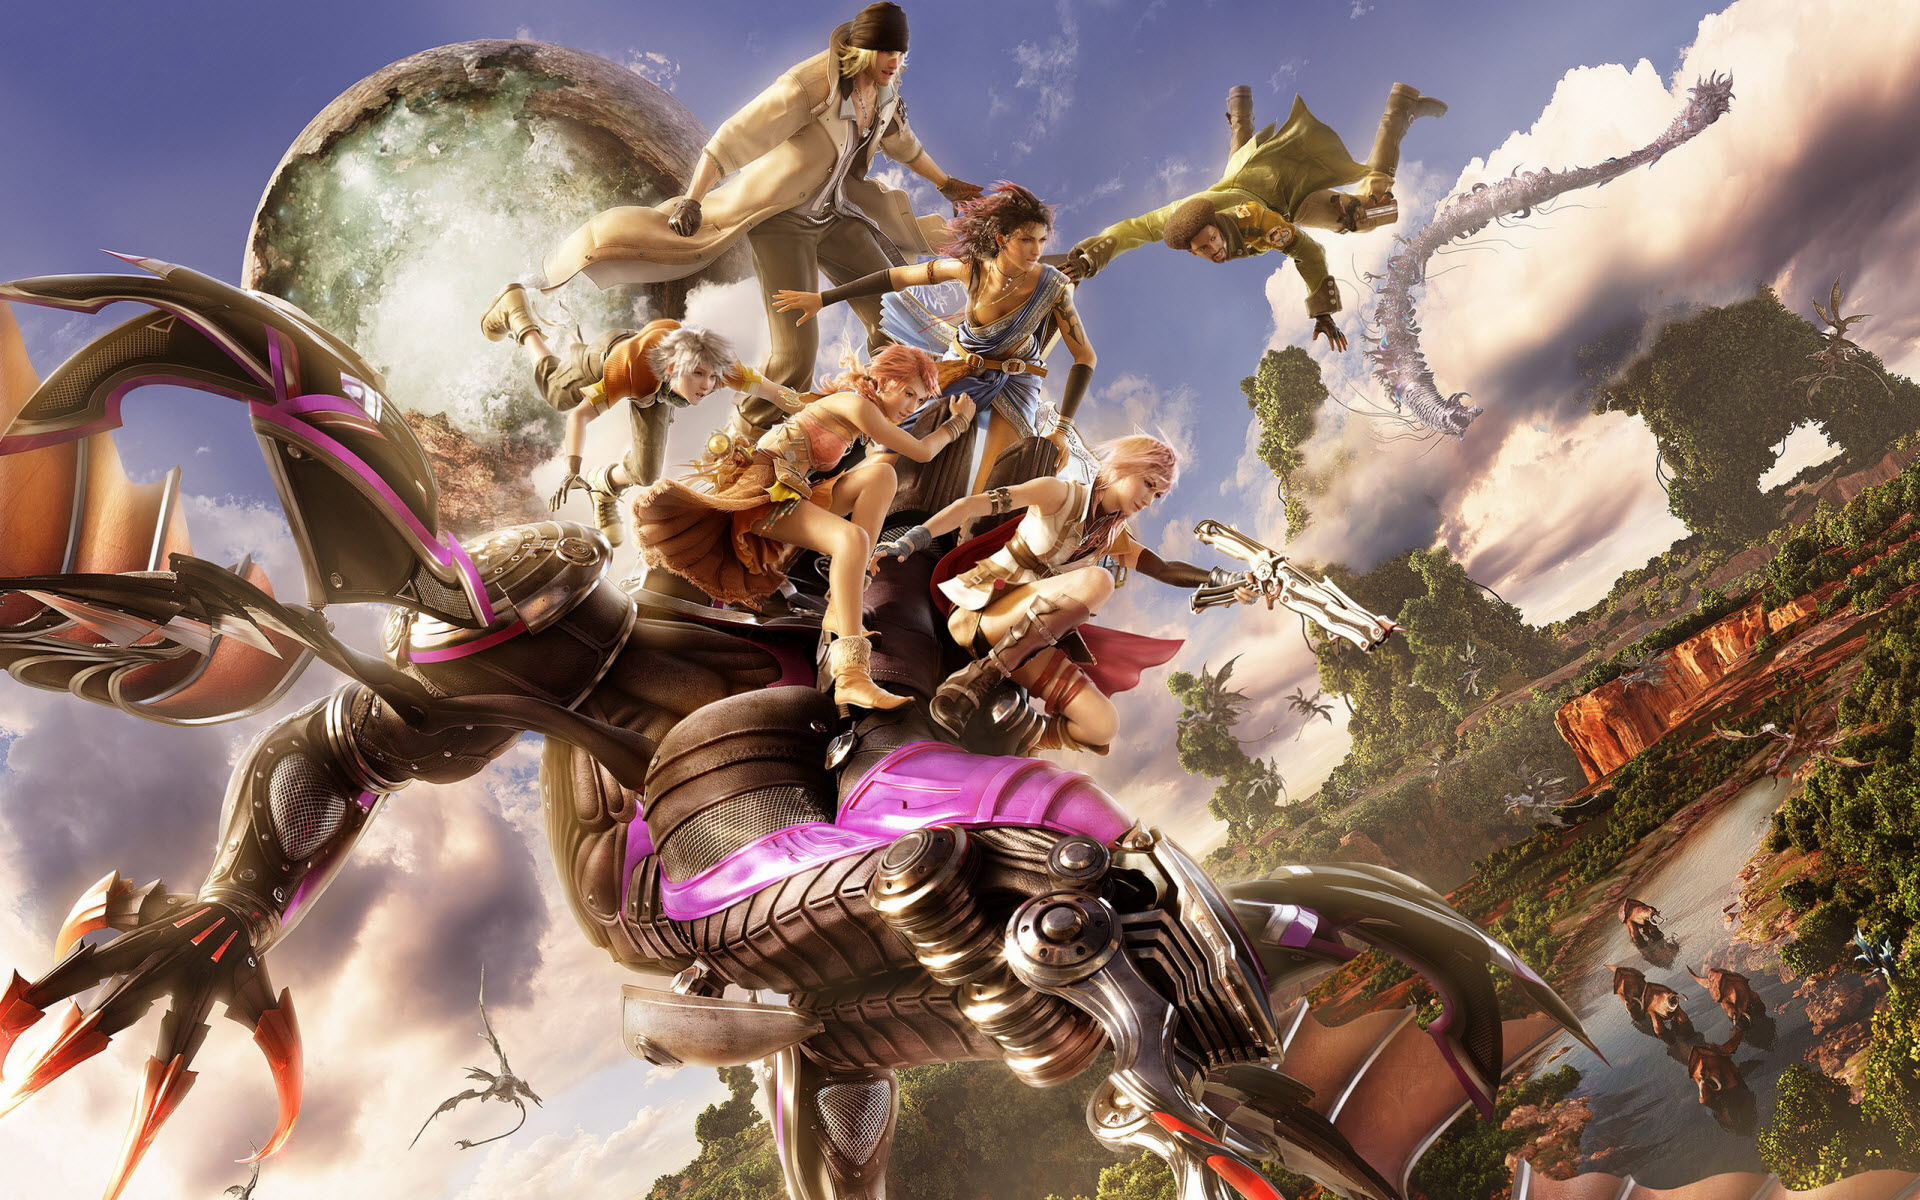 Final Fantasy XIII Game Wallpapers HD Wallpapers 1920x1200